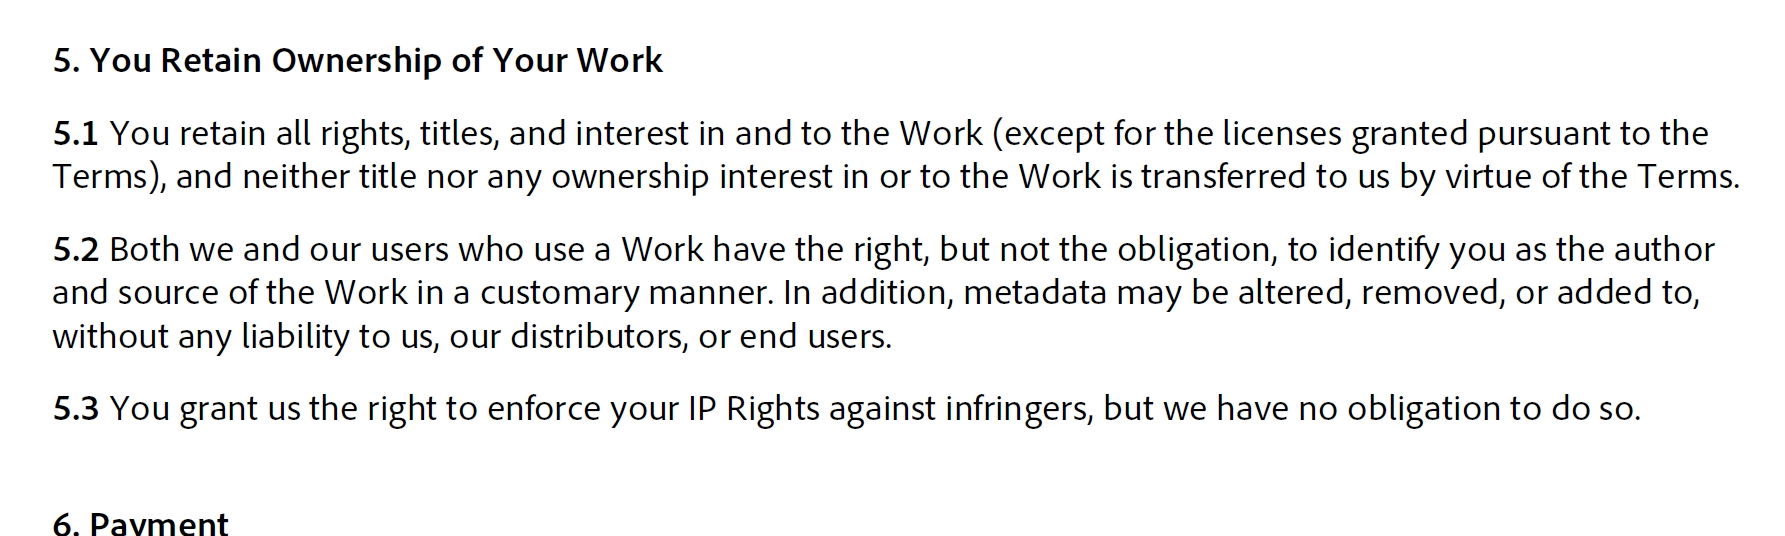 5_you_retain_ownership_of_your_work.jpg